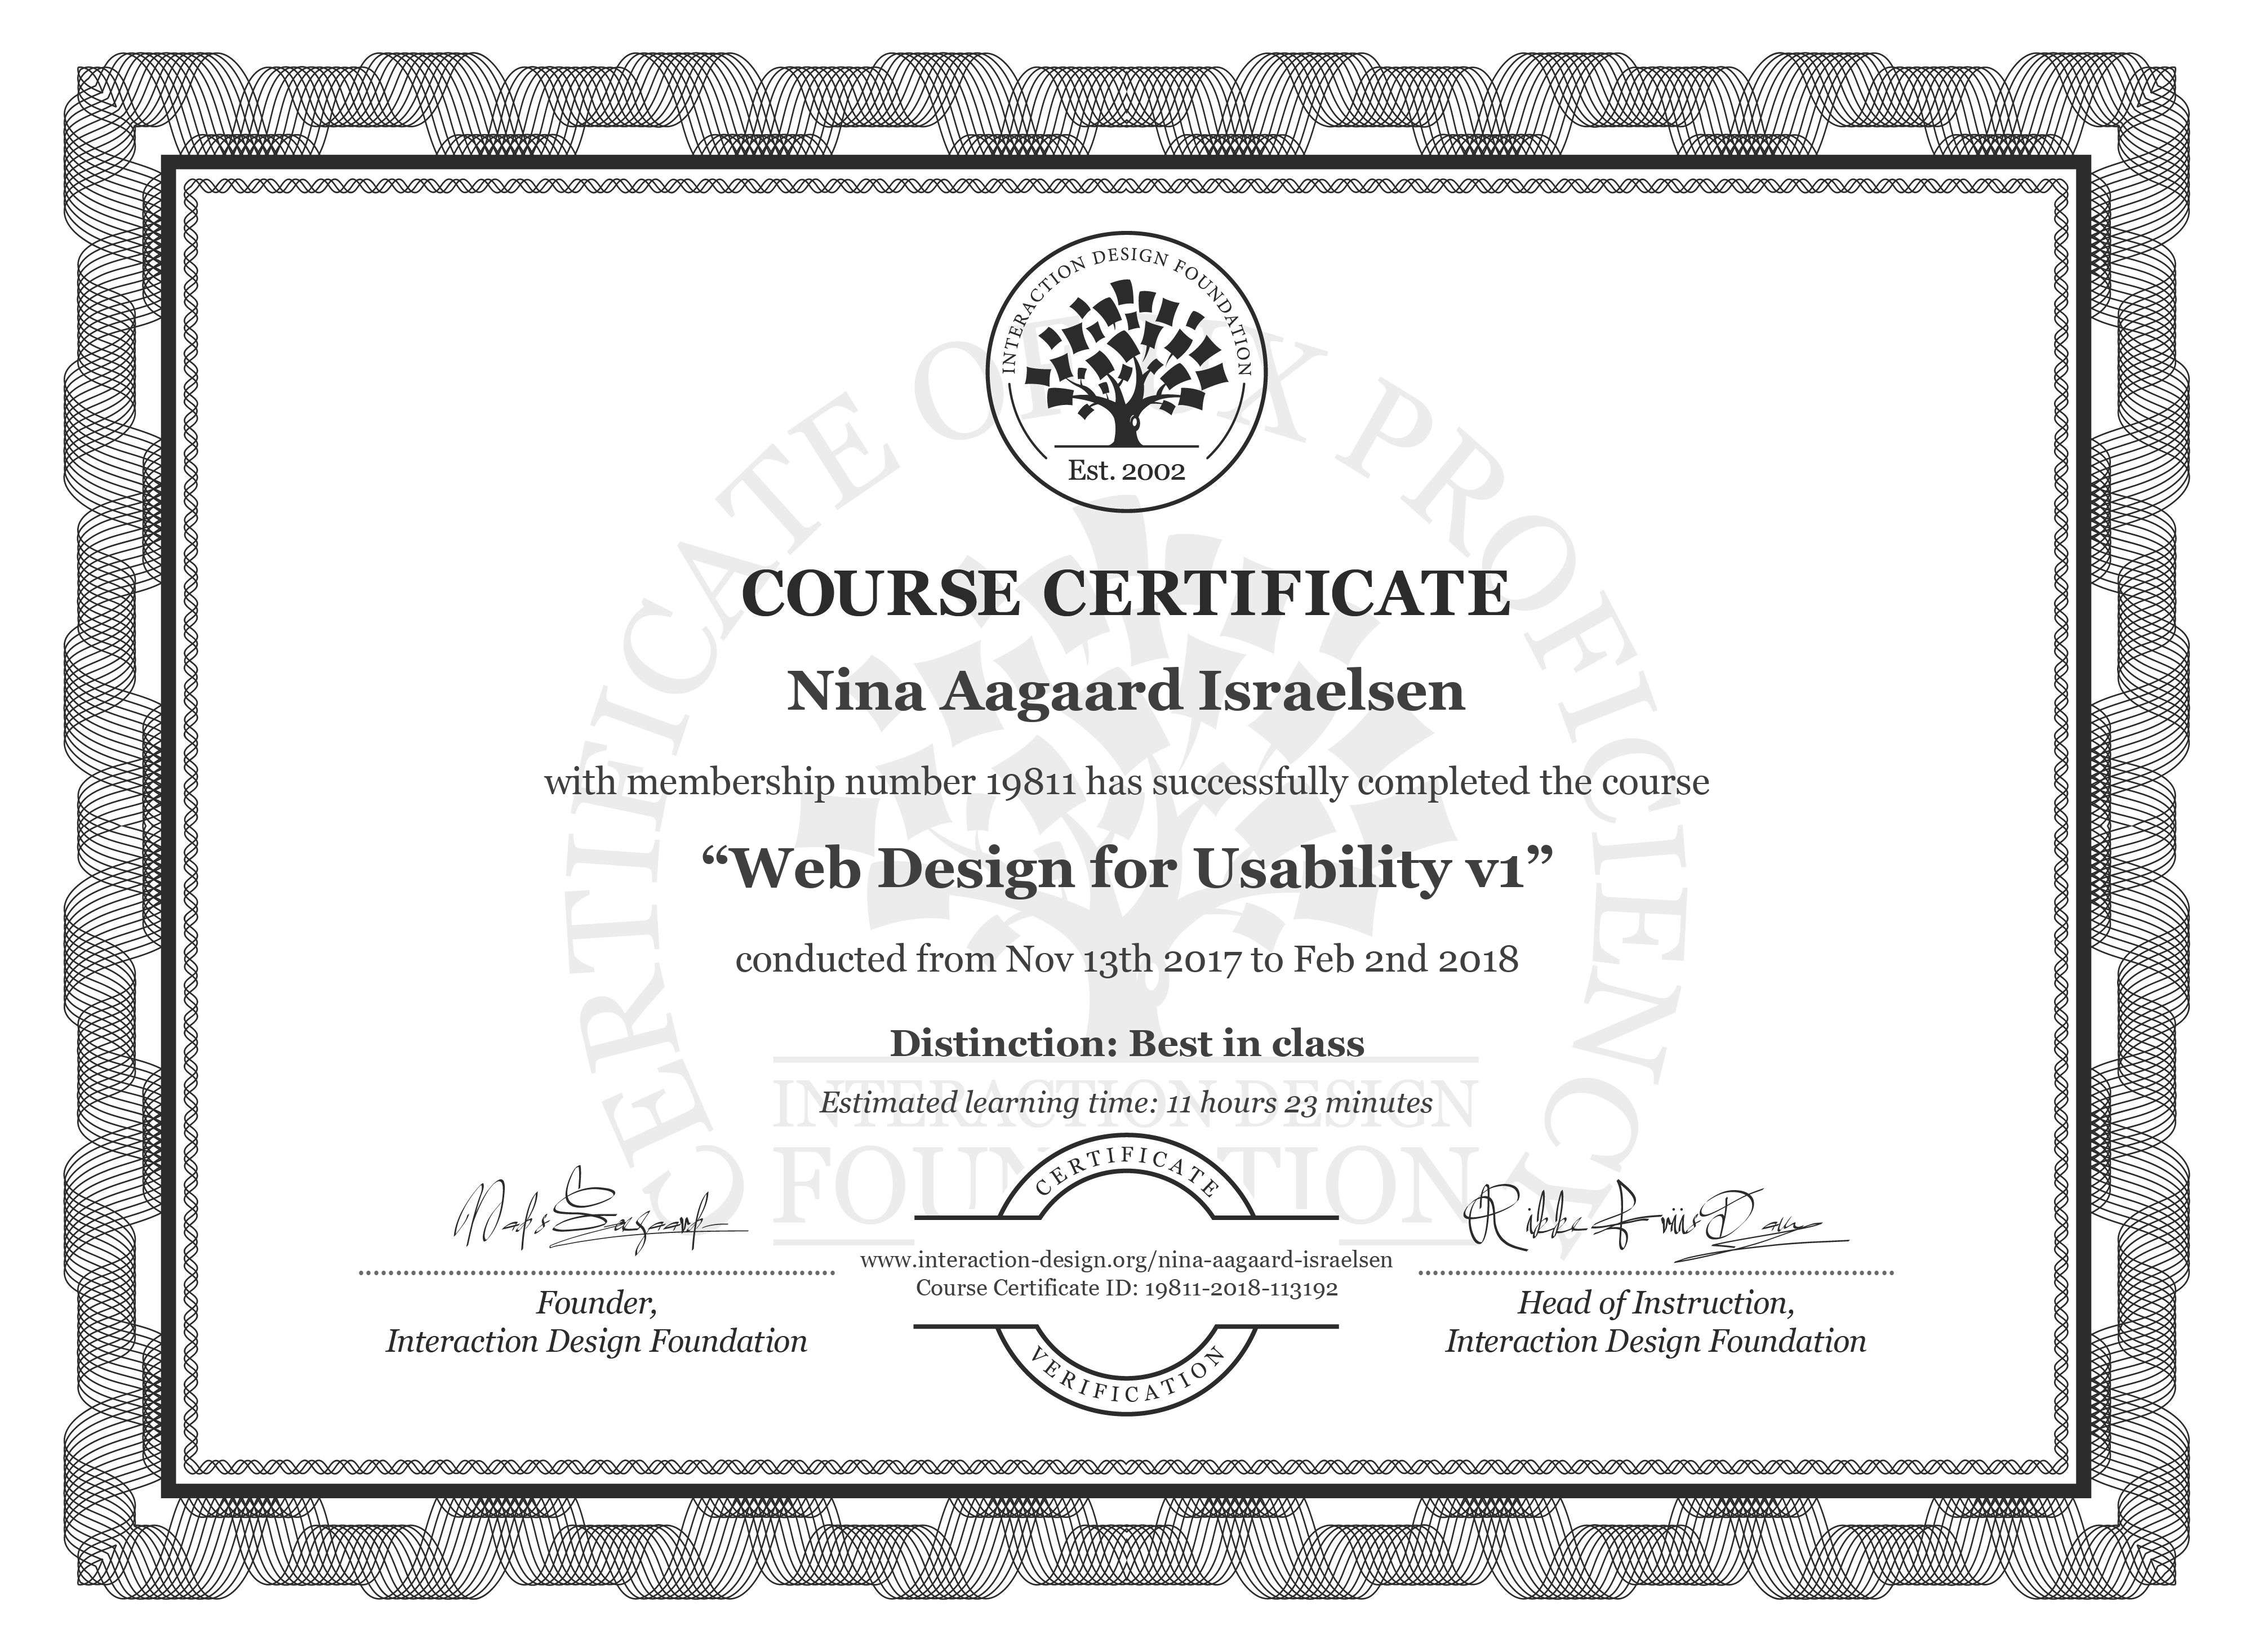 Nina Aagaard Israelsen's Course Certificate: Web Design for Usability